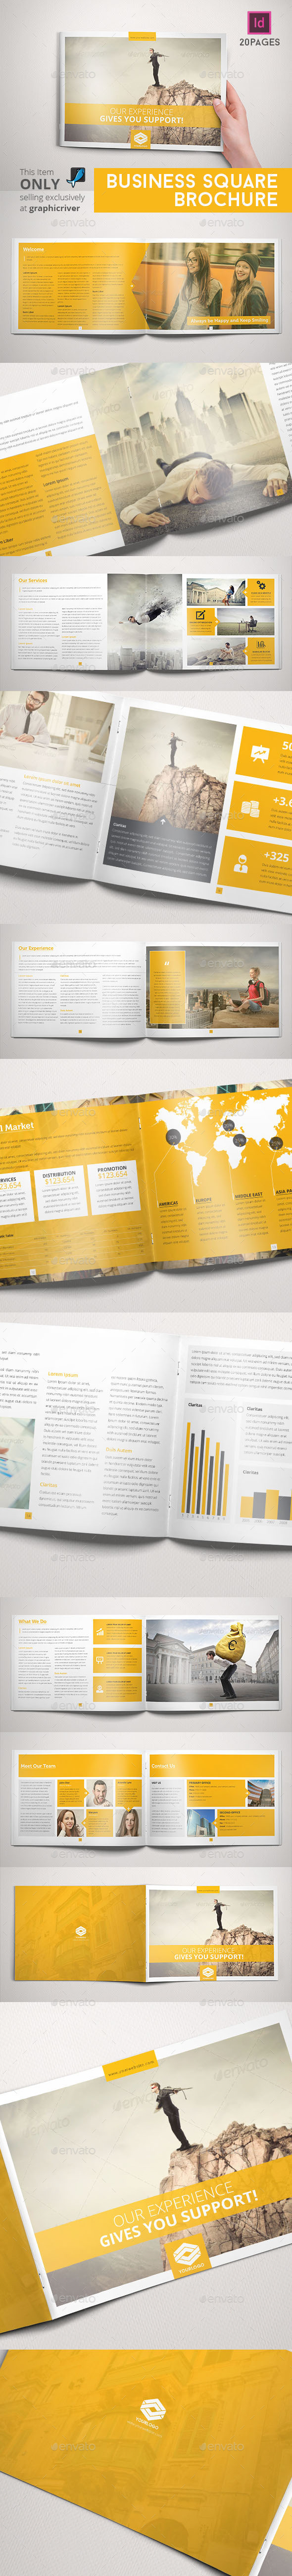 GraphicRiver Business Brochure Indesign Horizontal 9469780